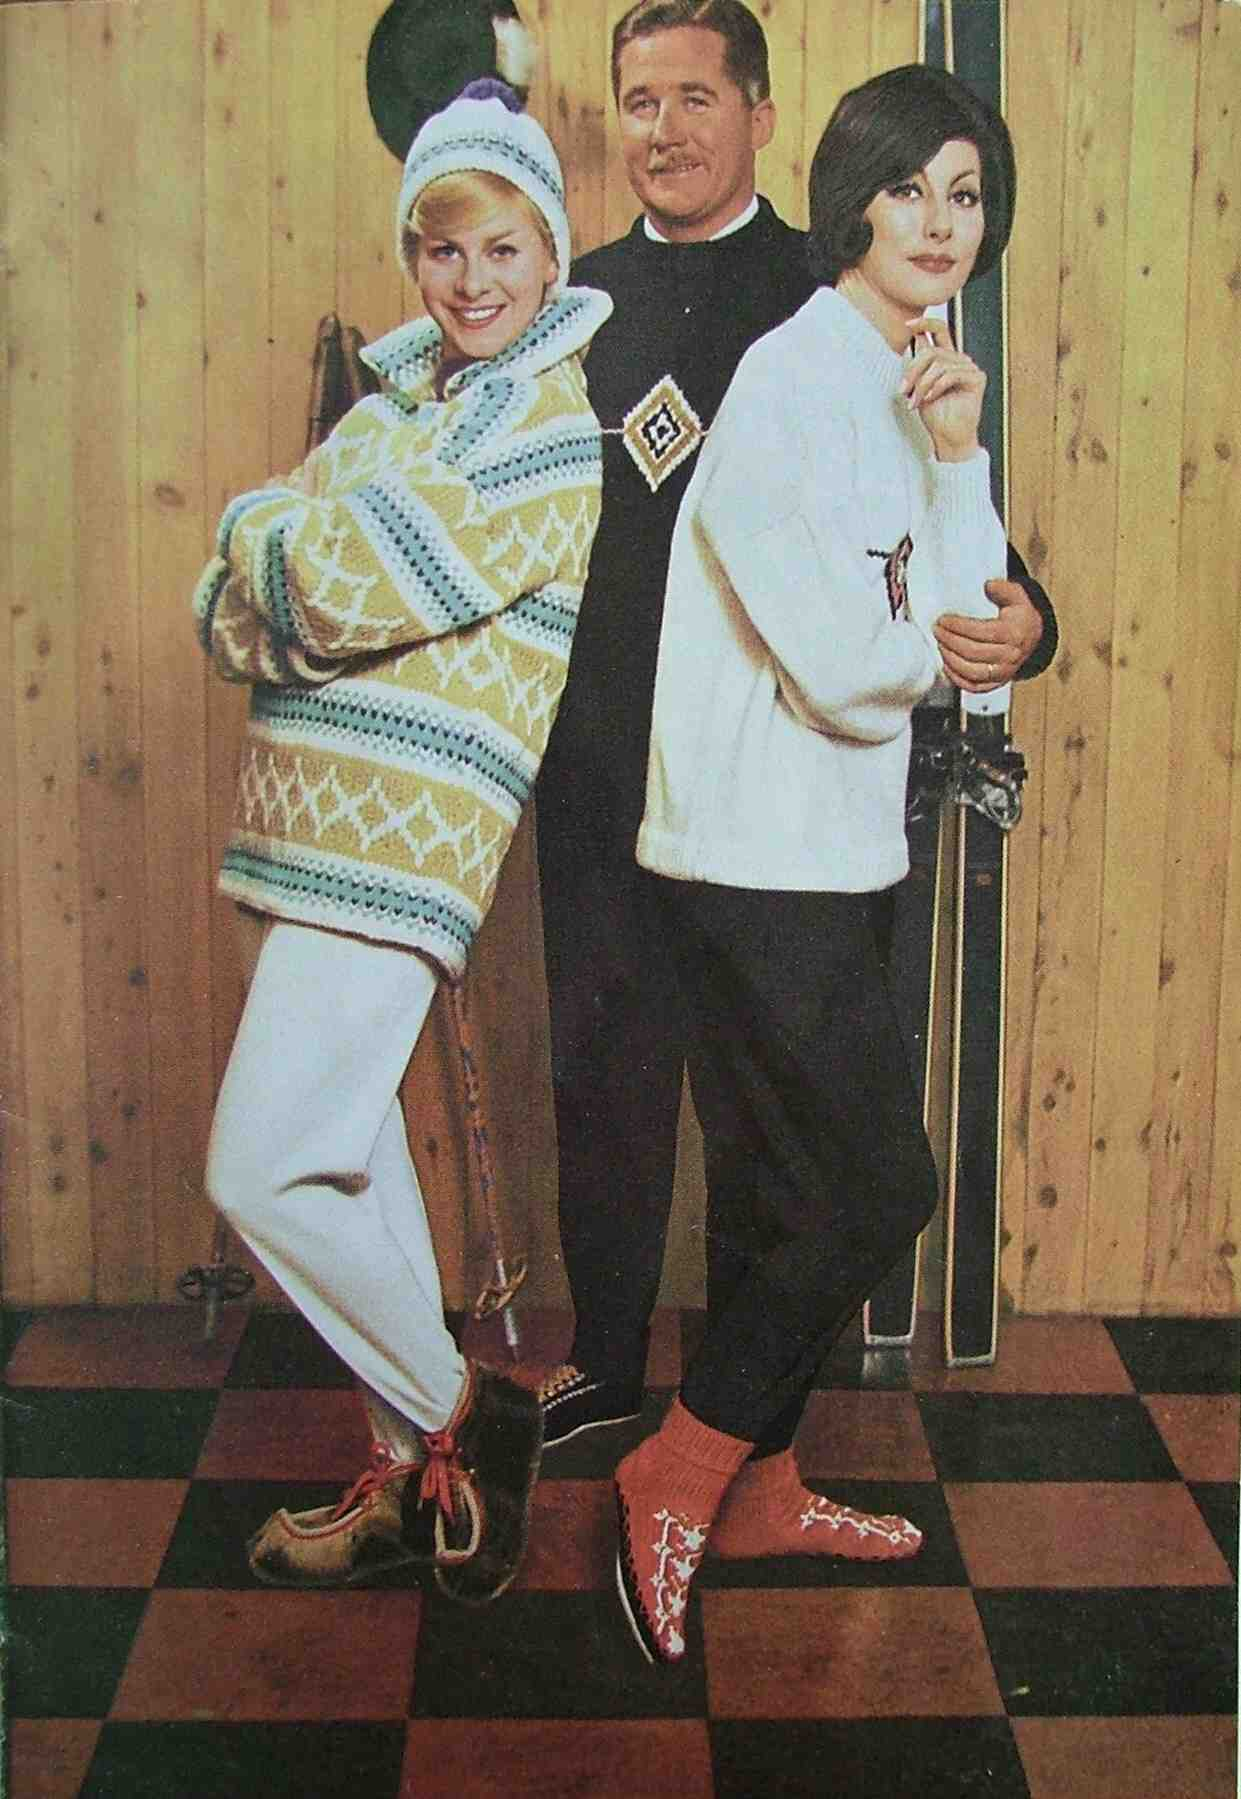 Vacation Knits by Villawool p9 circa 1960 photo source: theartofcostume.wordpress.com